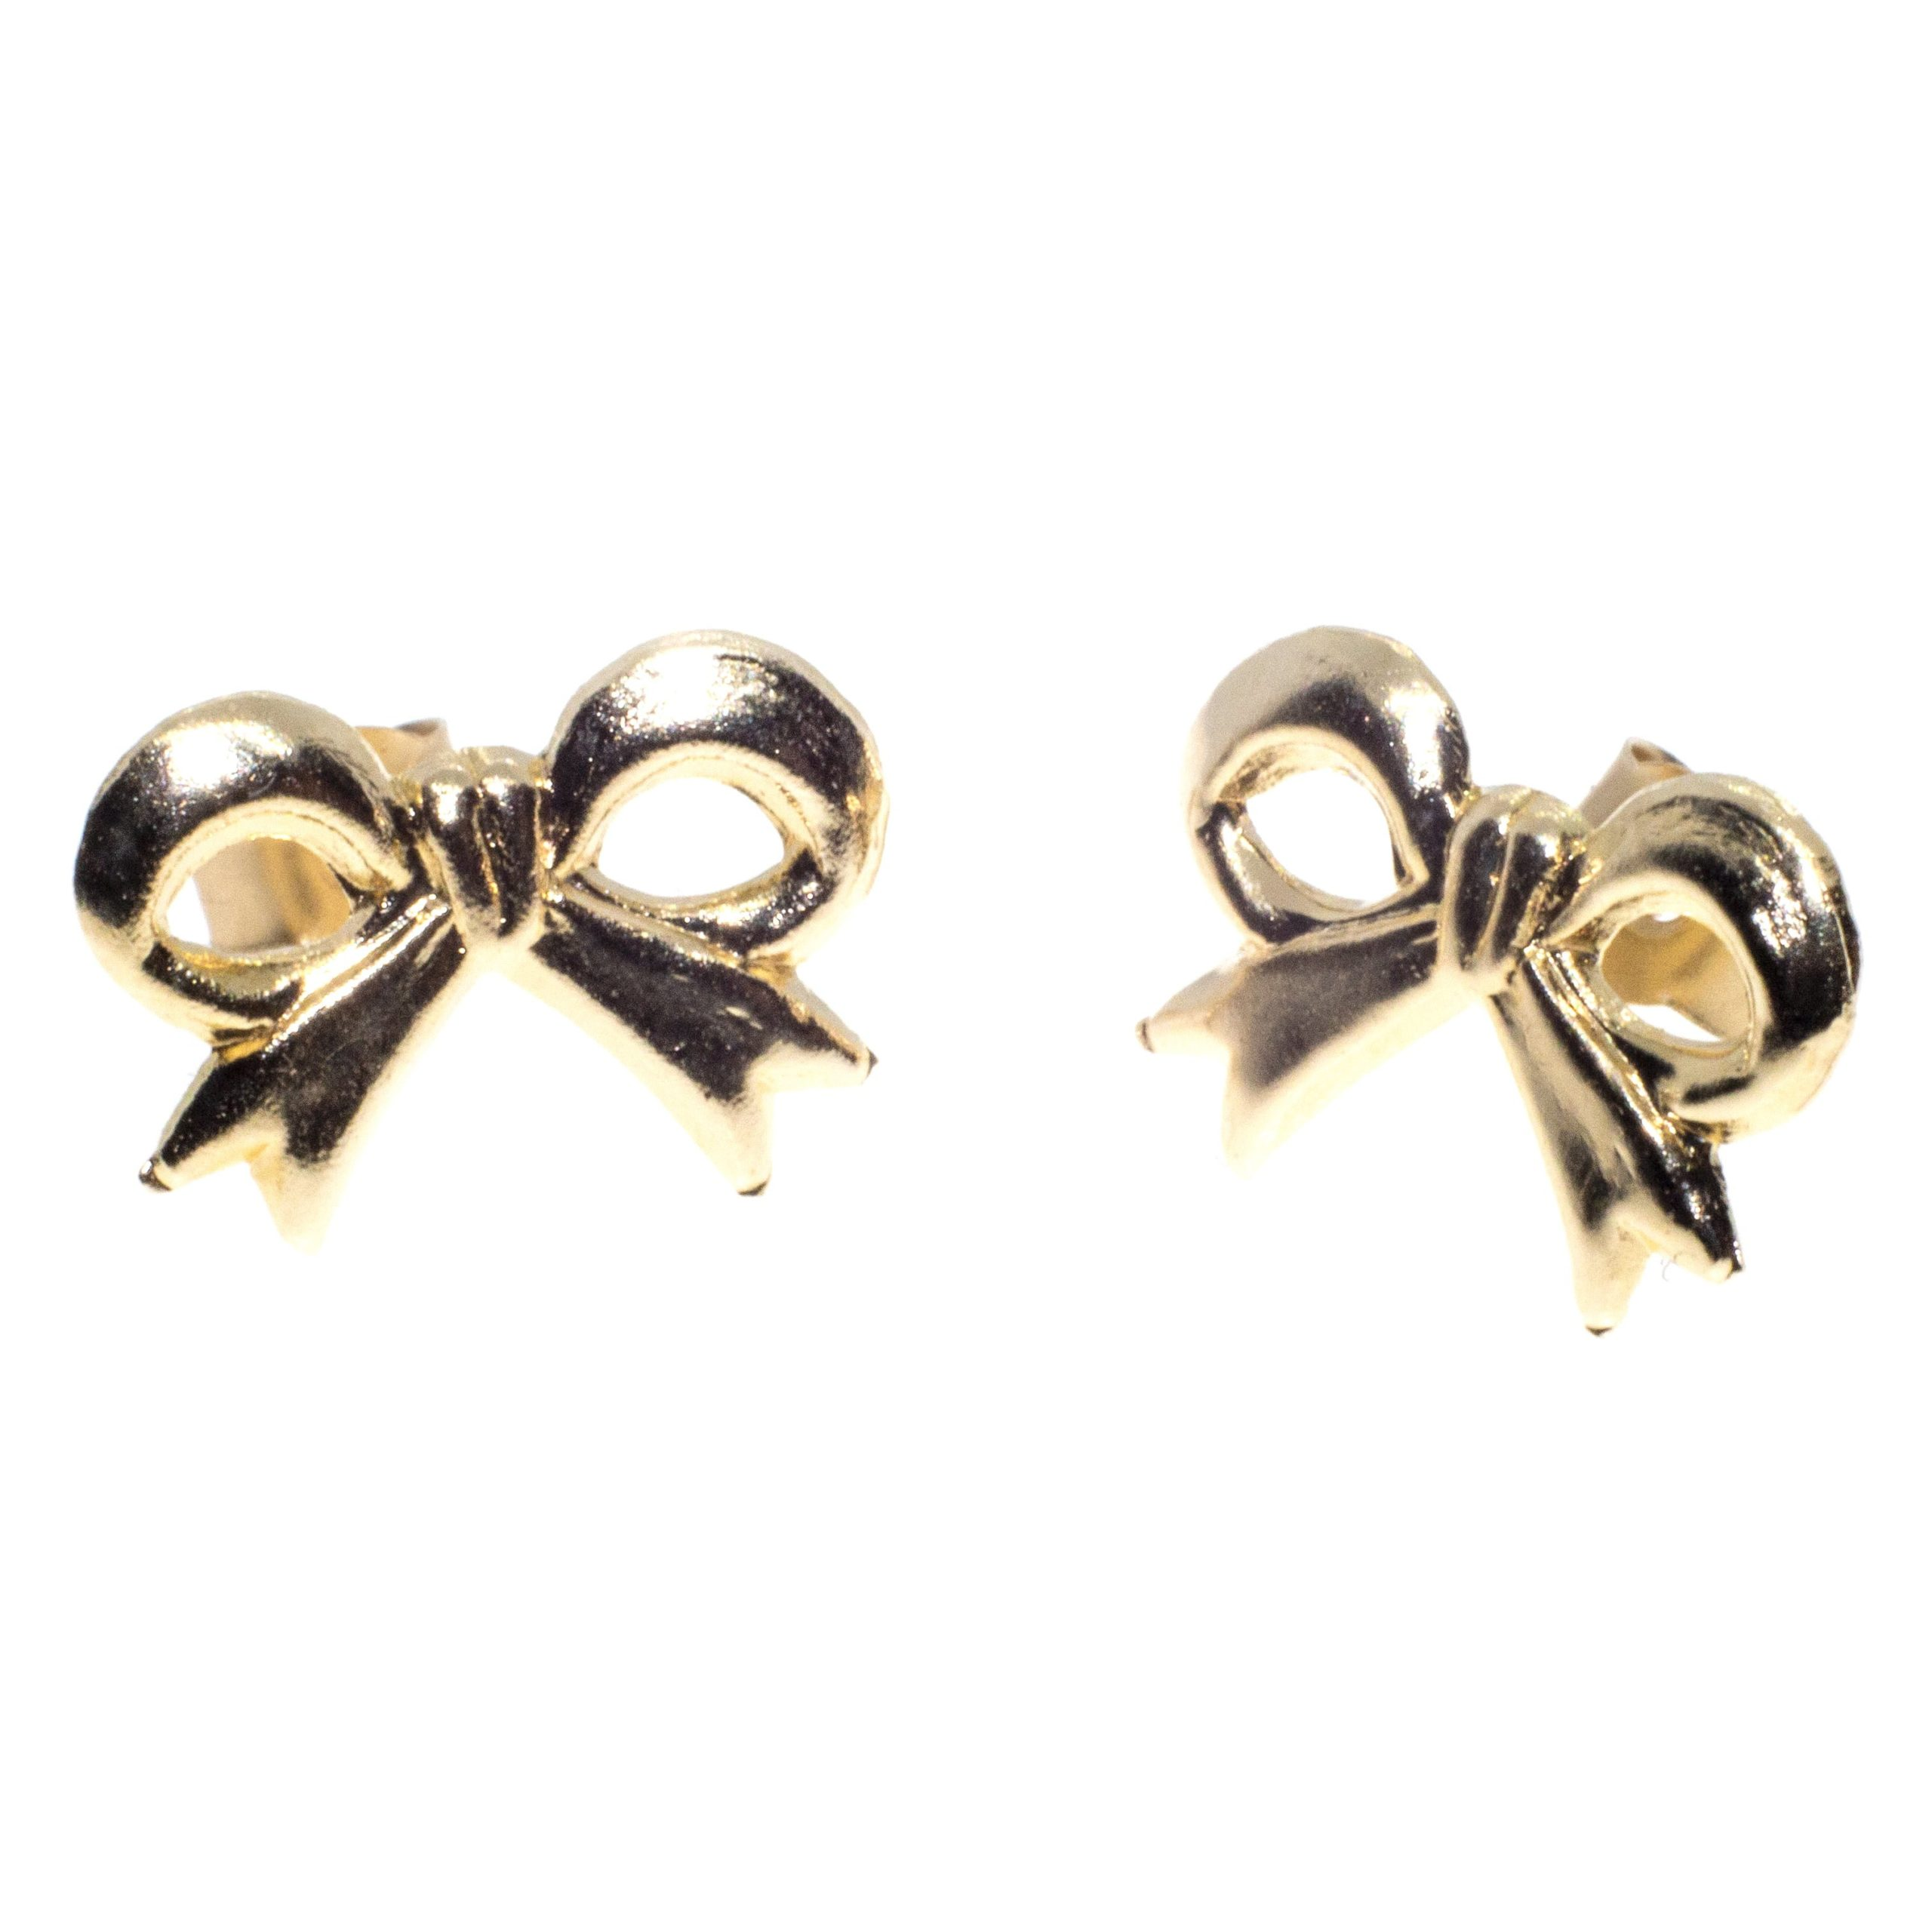 9ct gold ribbon bow earrings